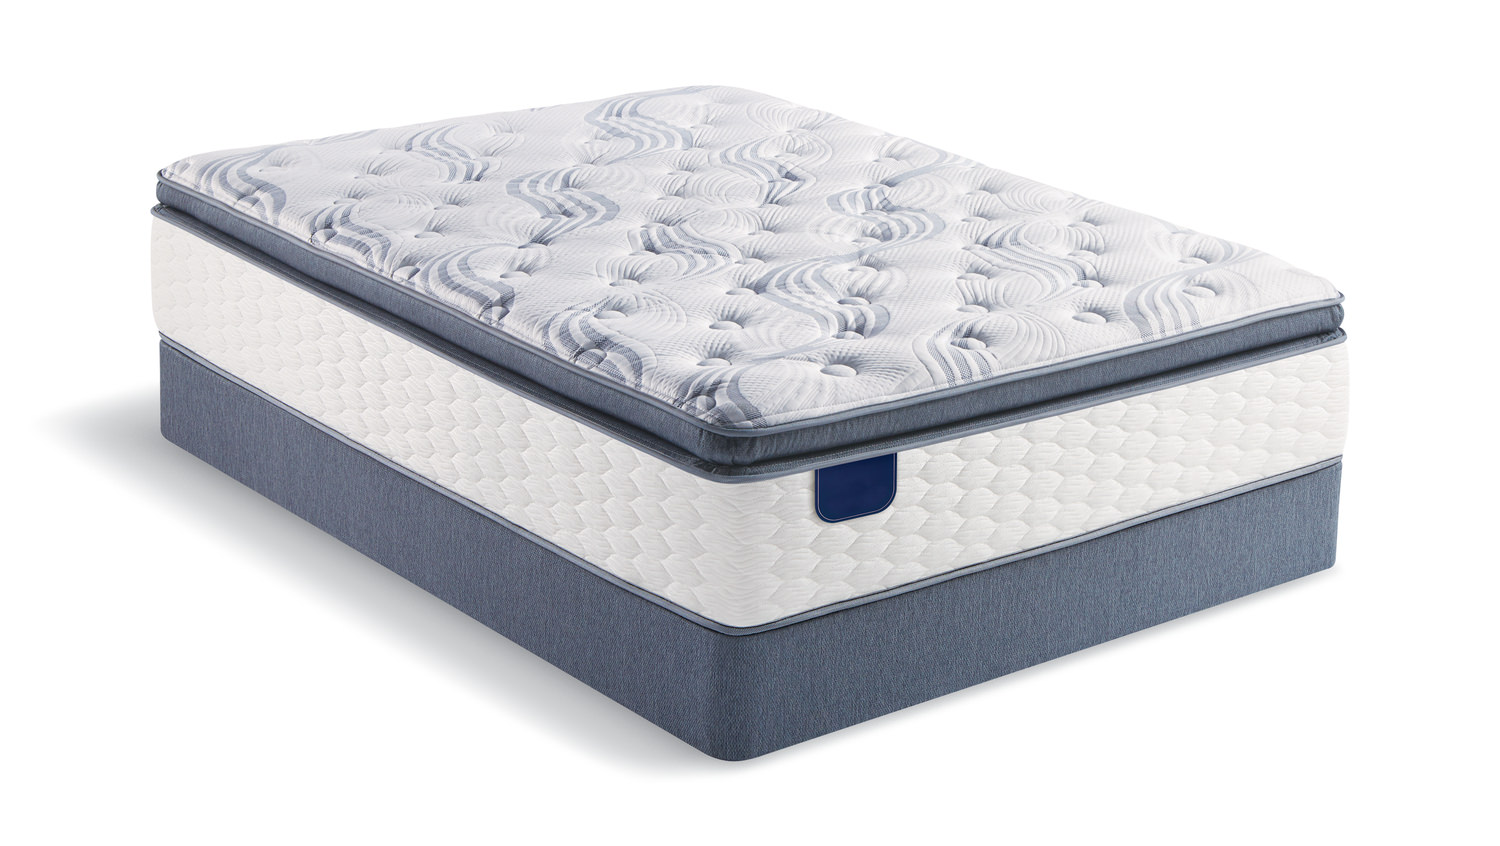 Vera Wang By Serta Mattress Lonestar Mattress Outlet